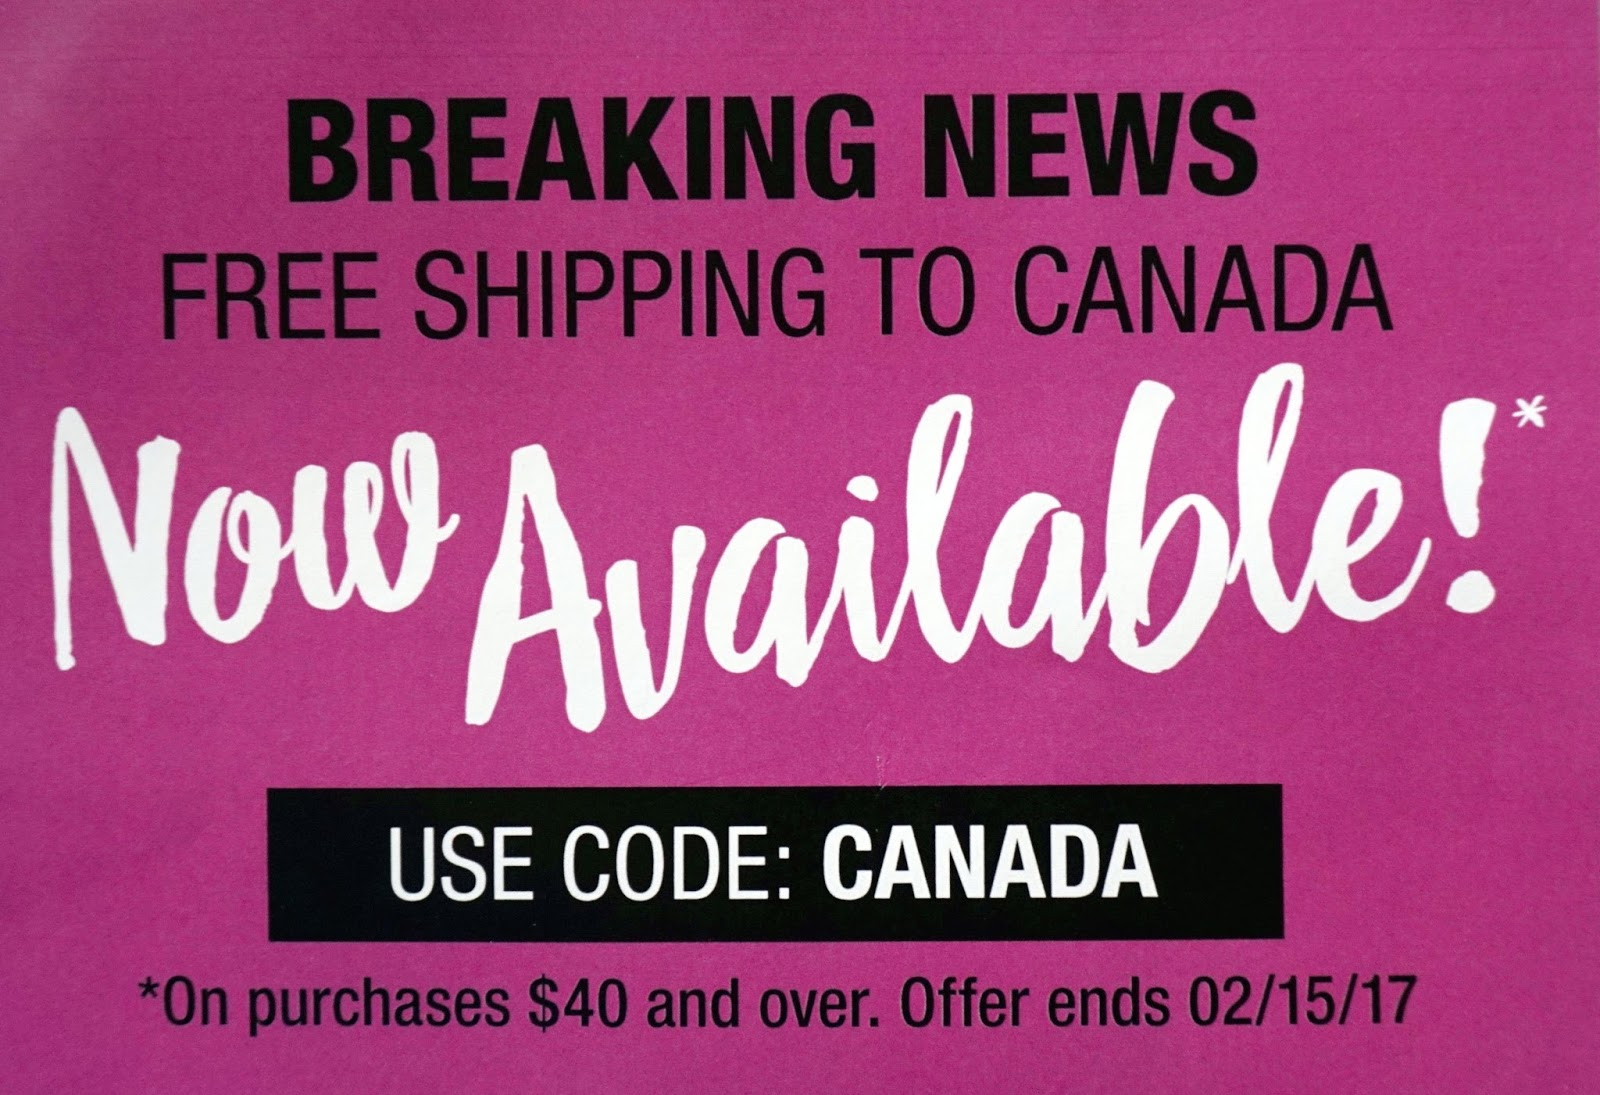 wet n wild canada coupon code free shipping